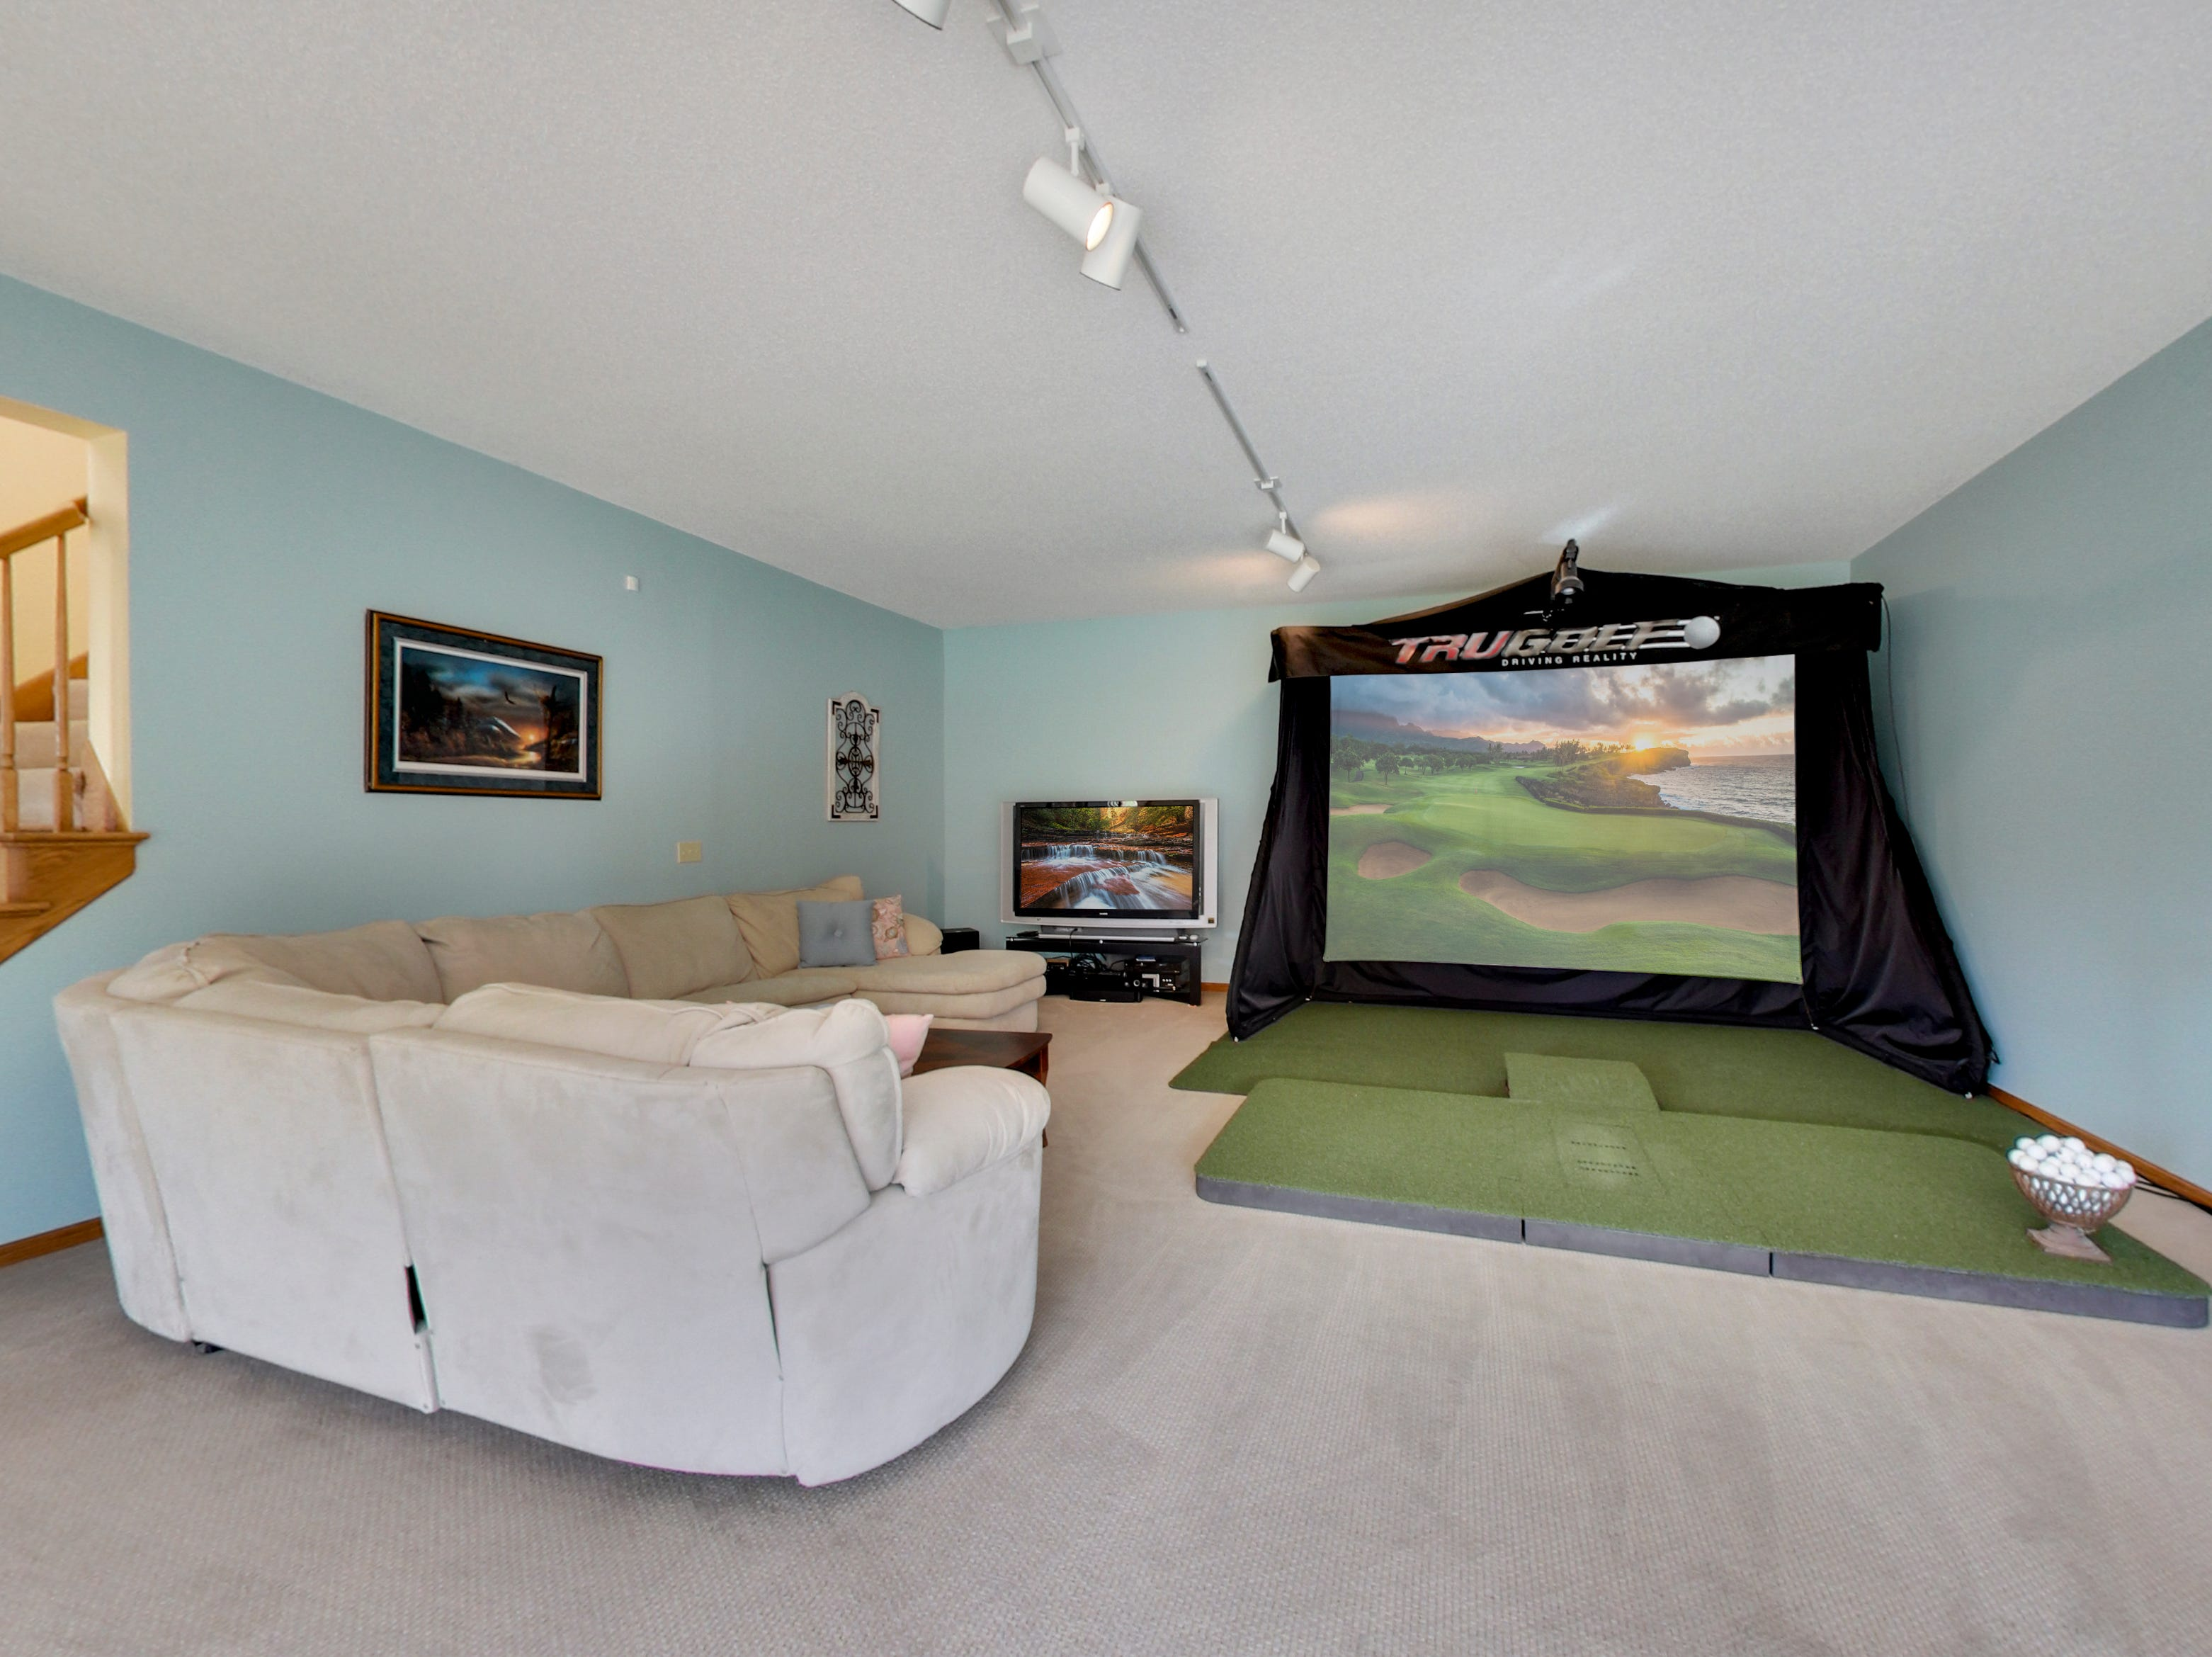 The lower floor has a 40-foot long utility room as well as a spacious game room and amusement room.